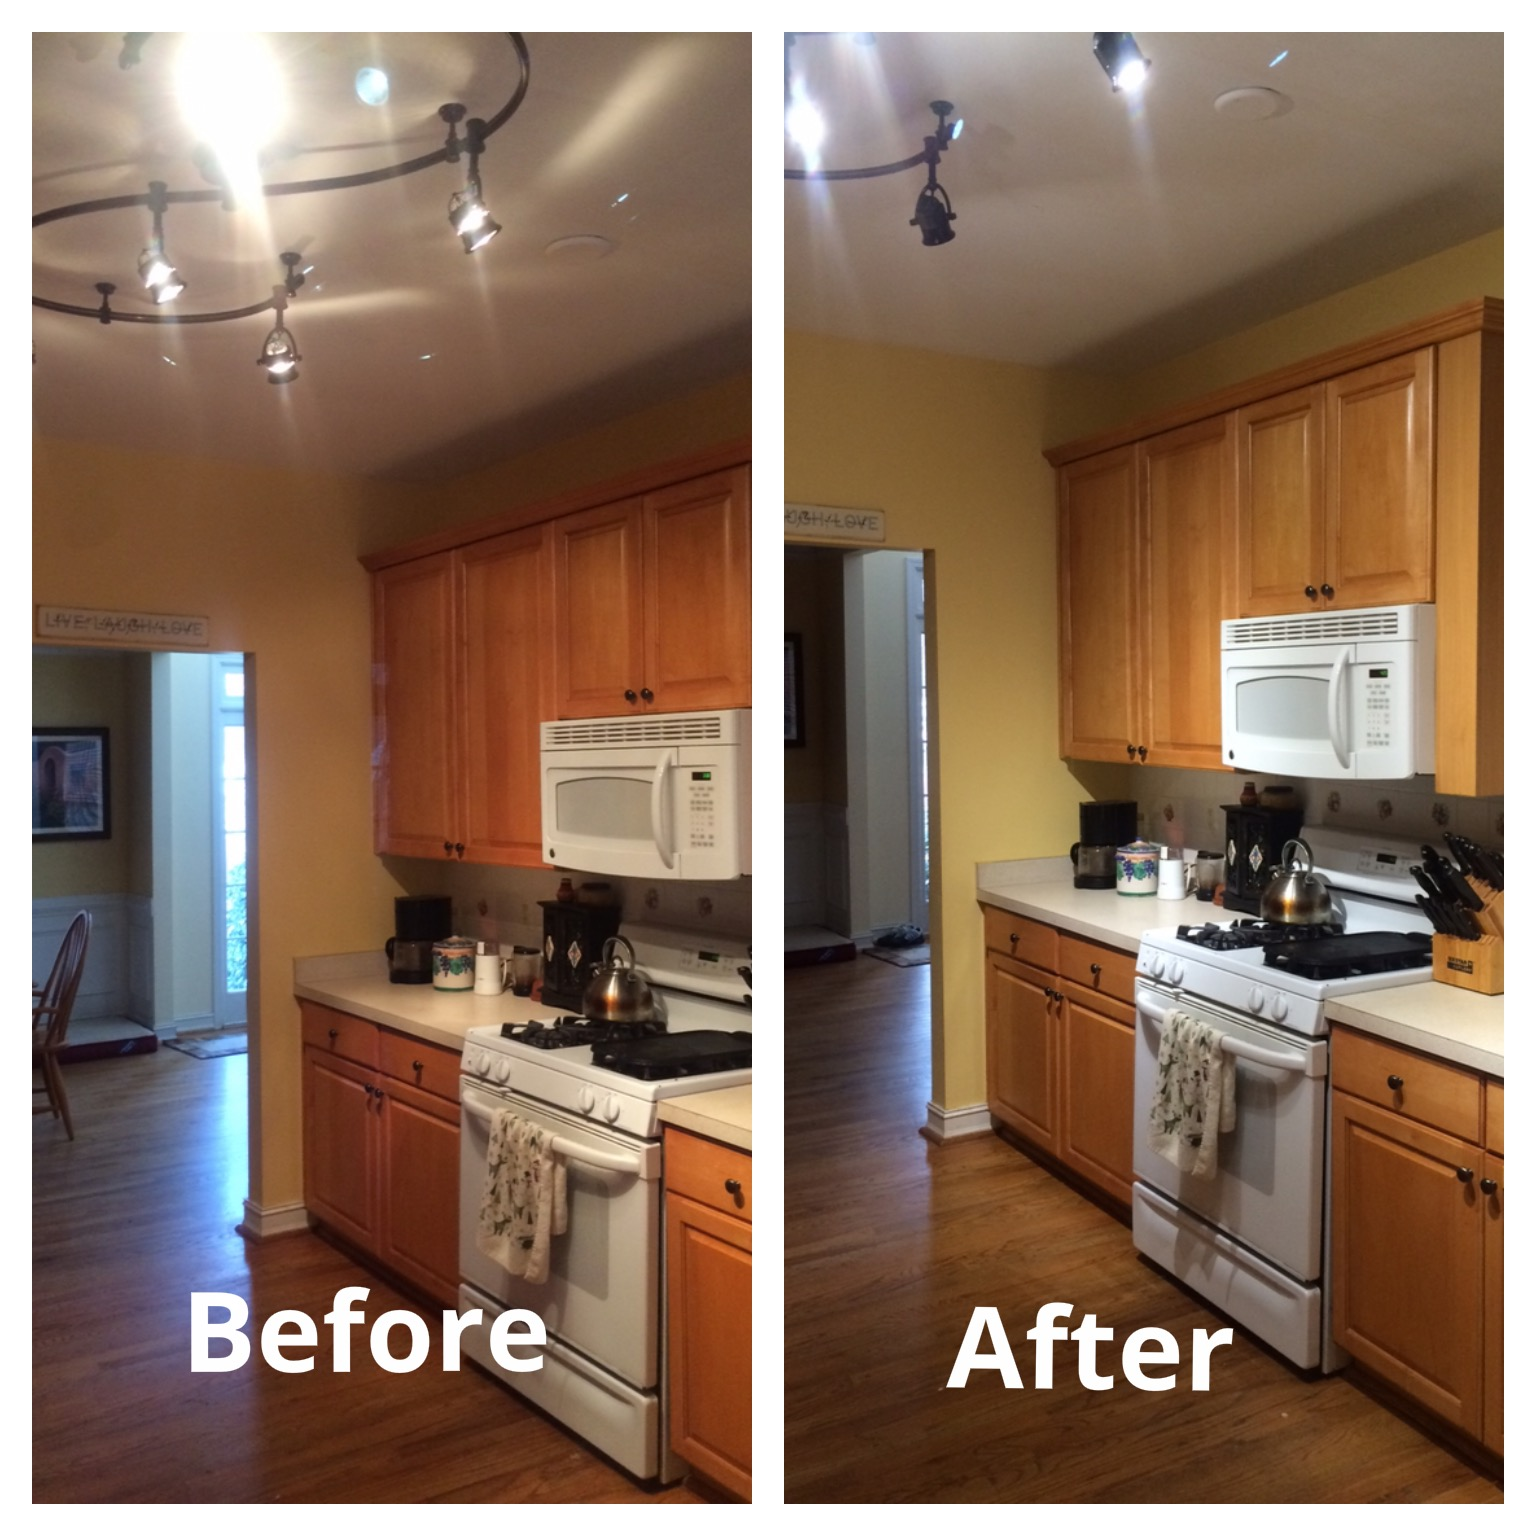 Lighting For The Kitchen: LED Lights Replace Halogens In Kitchen Update